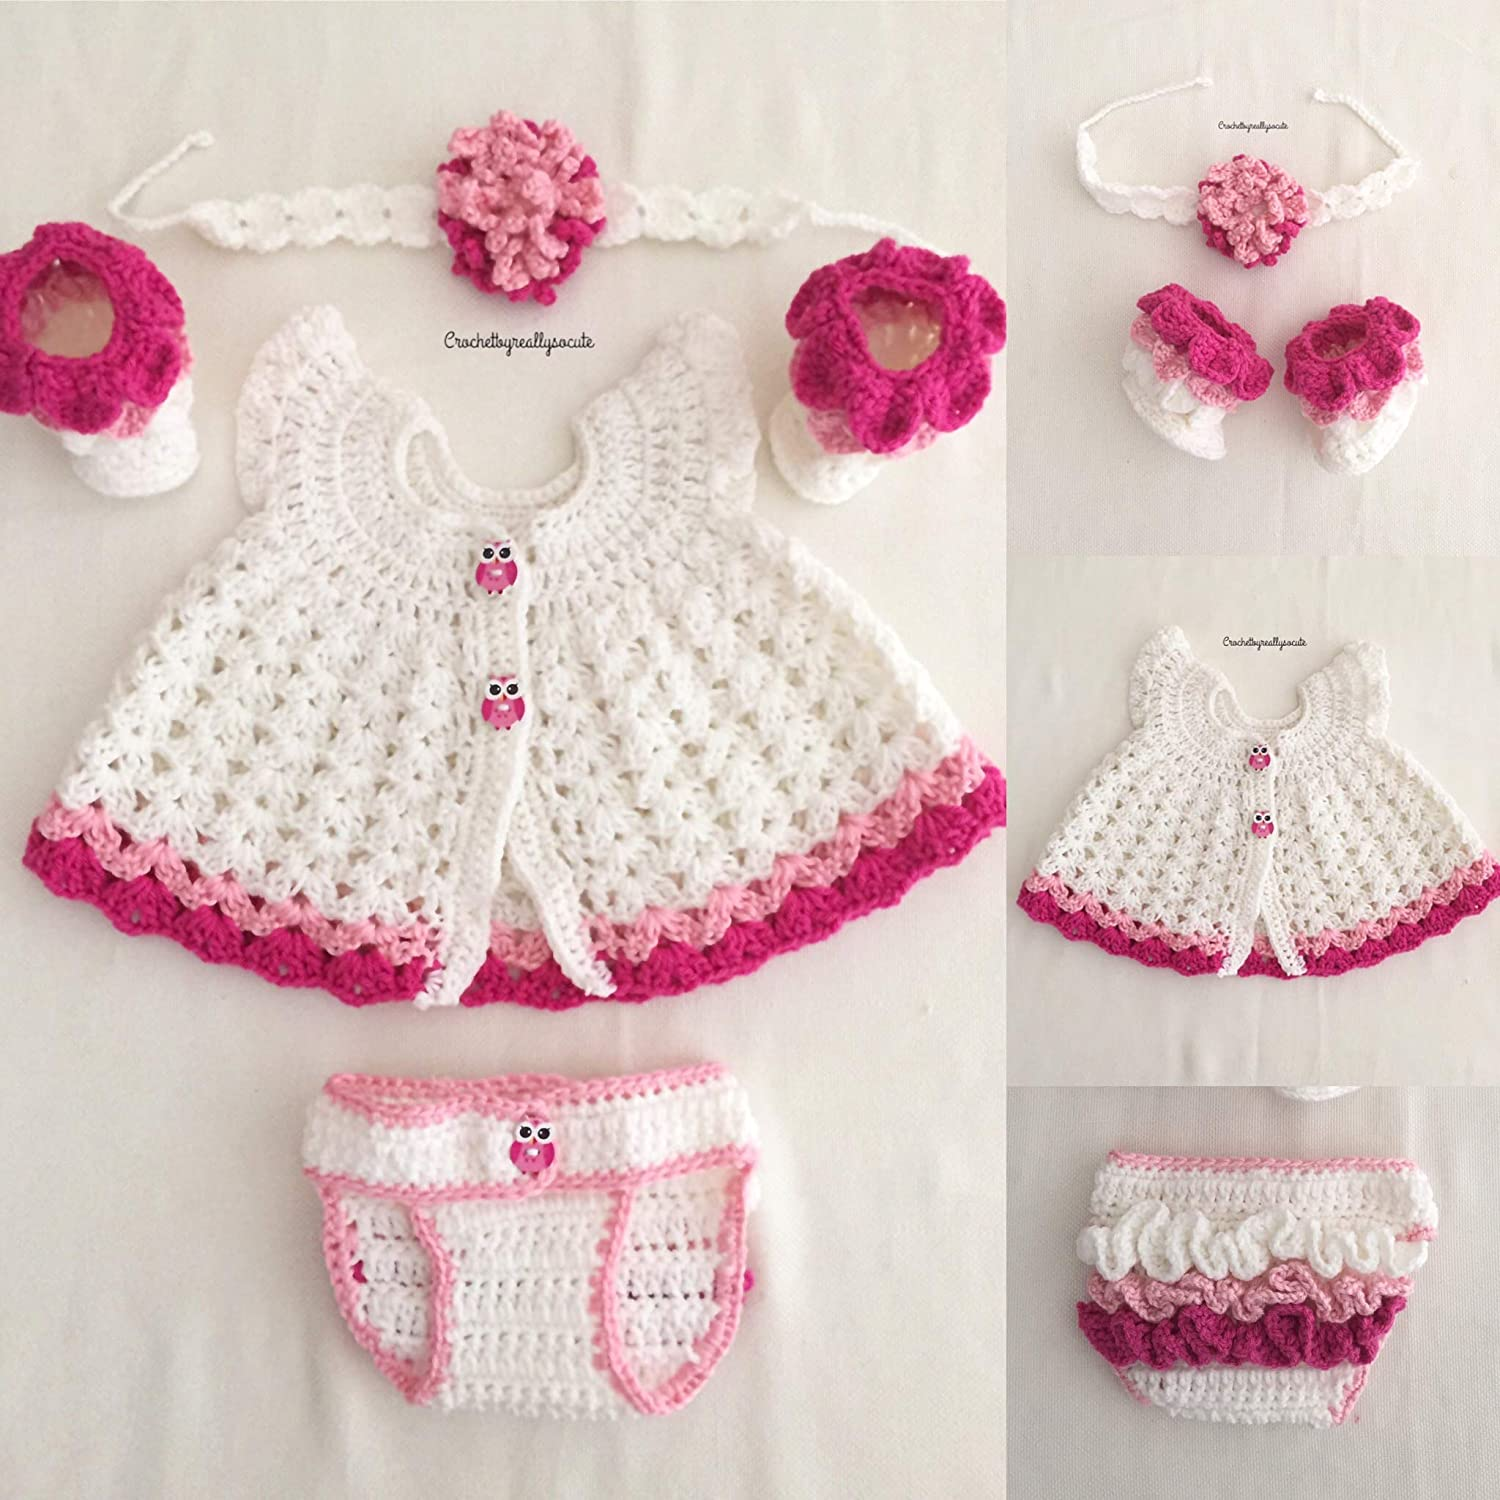 3e100640a84 Amazon.com: baby girl pink set, baby girl outfit, ruffled baby ...